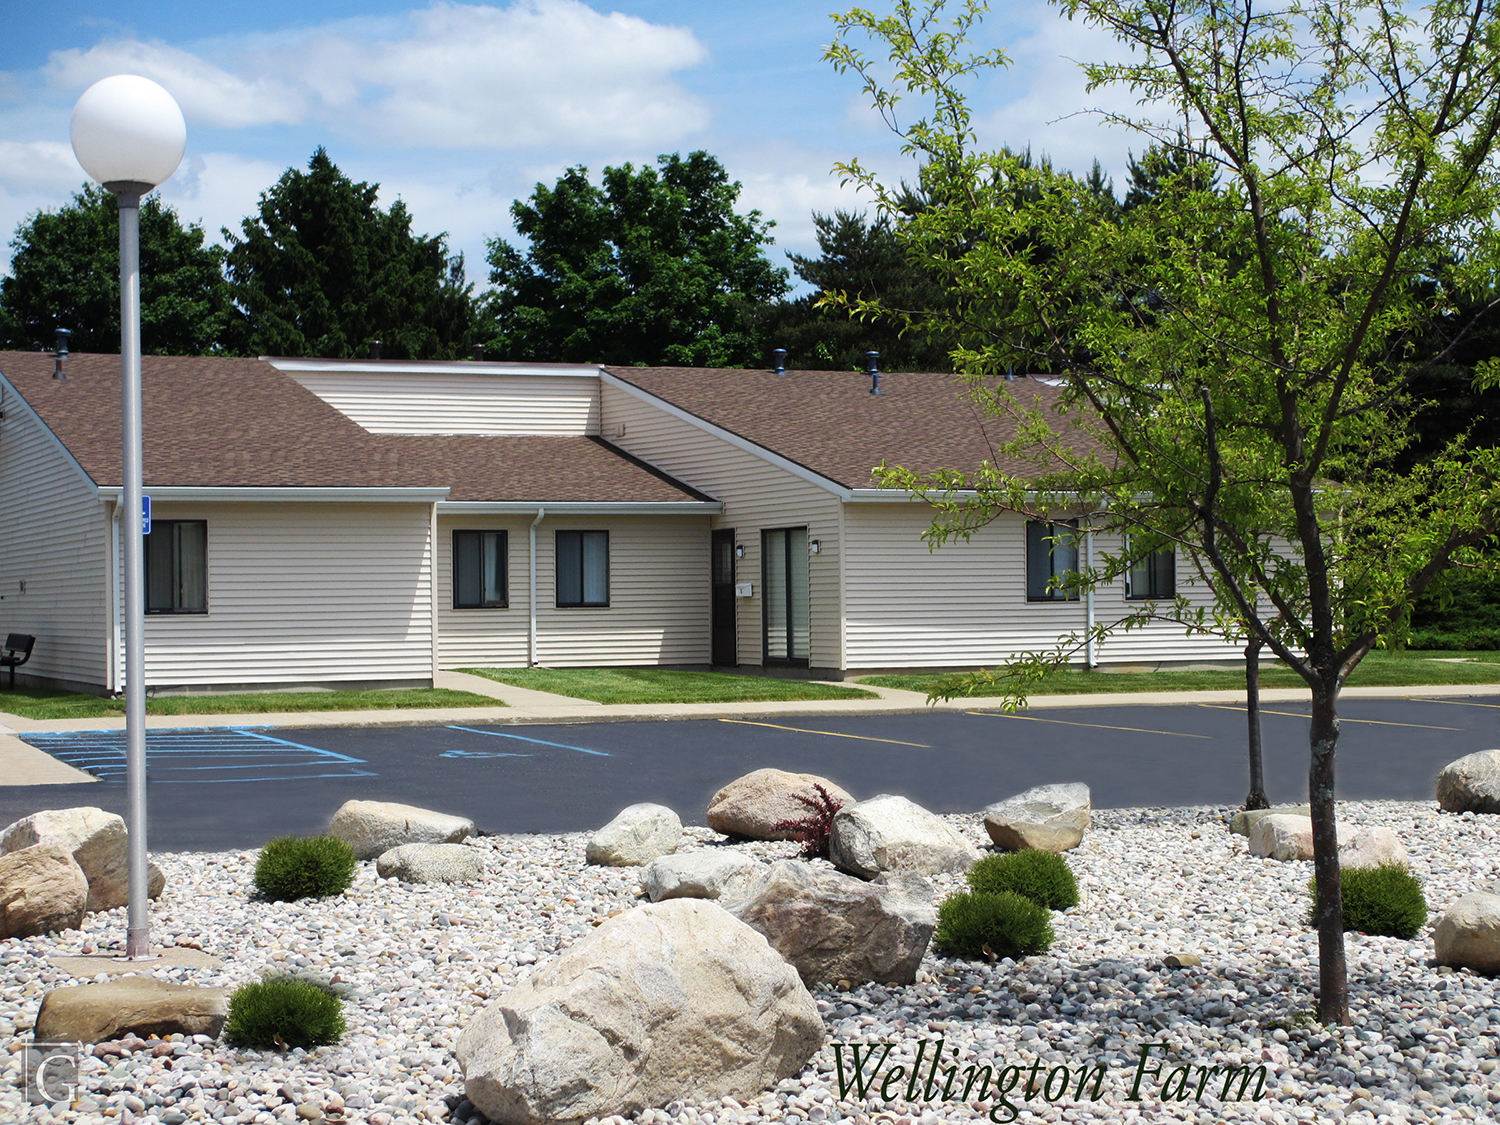 Wellington Farm Apartments